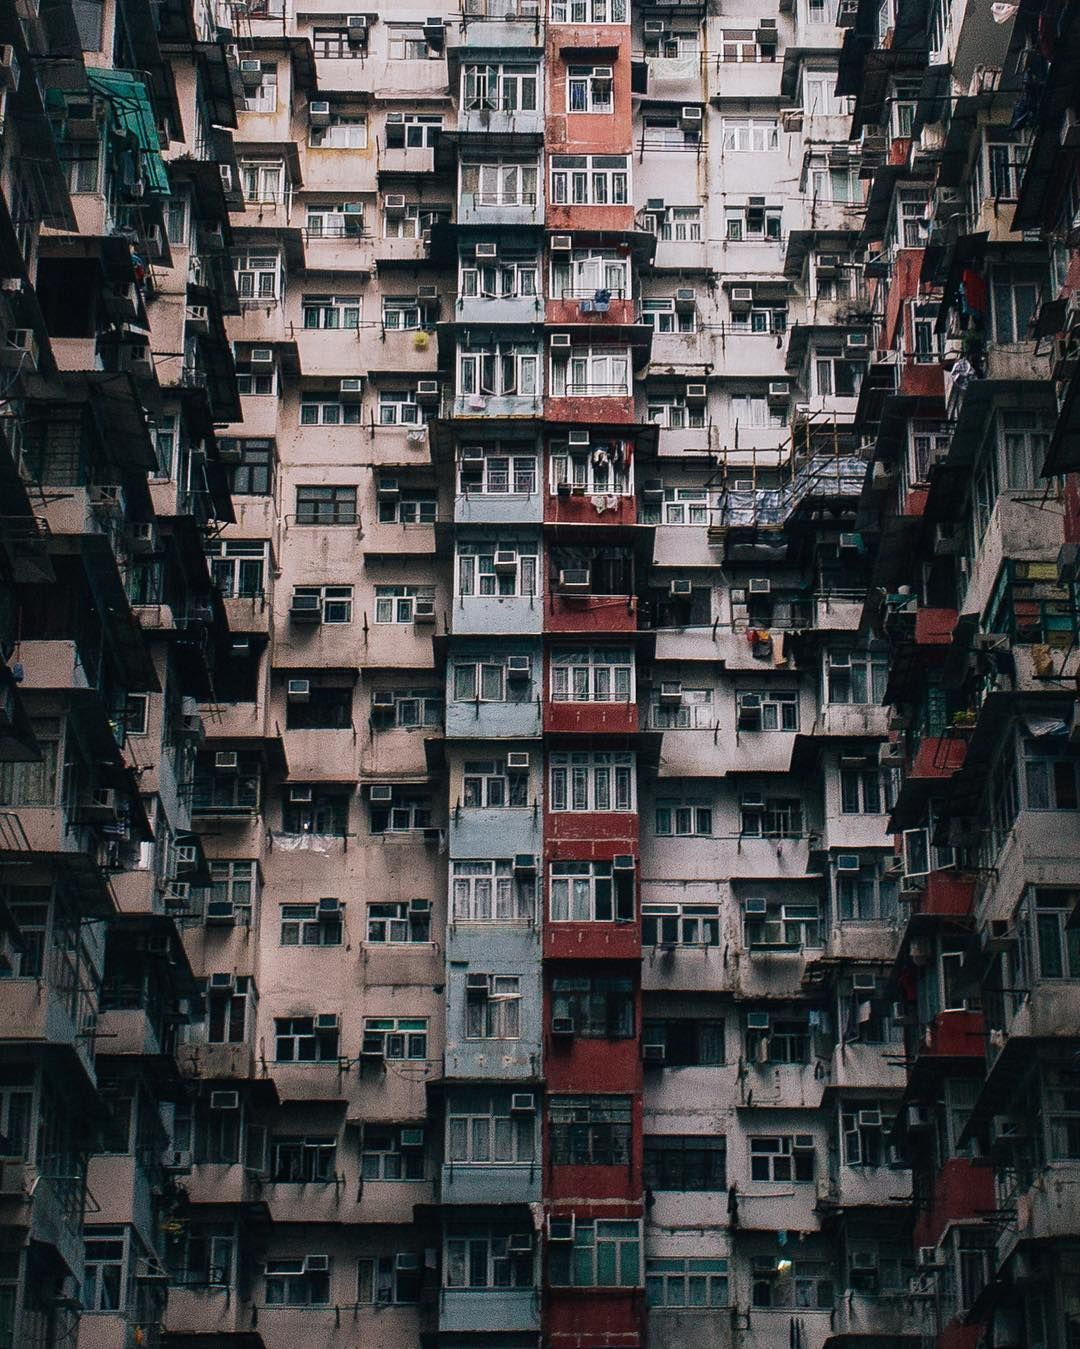 Urban Landscape Photography New Perspective By Daredevil Landscapephotography Urban Landscape Landscape Photography Tips Beautiful Landscape Photography